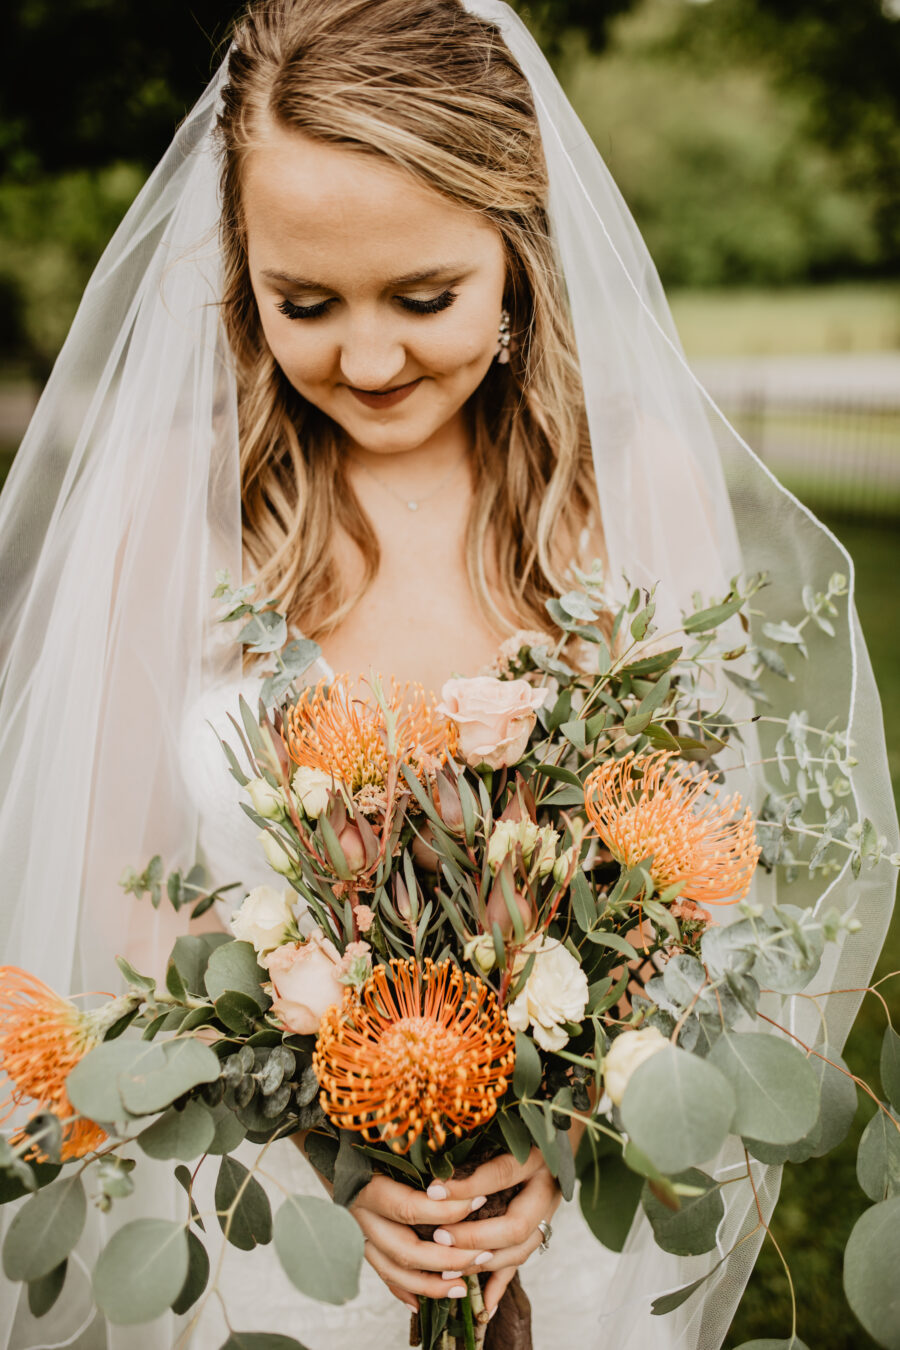 Bridal portrait: Stunning Fall Styled Shoot at Promise Manor featured on Nashville Bride Guide